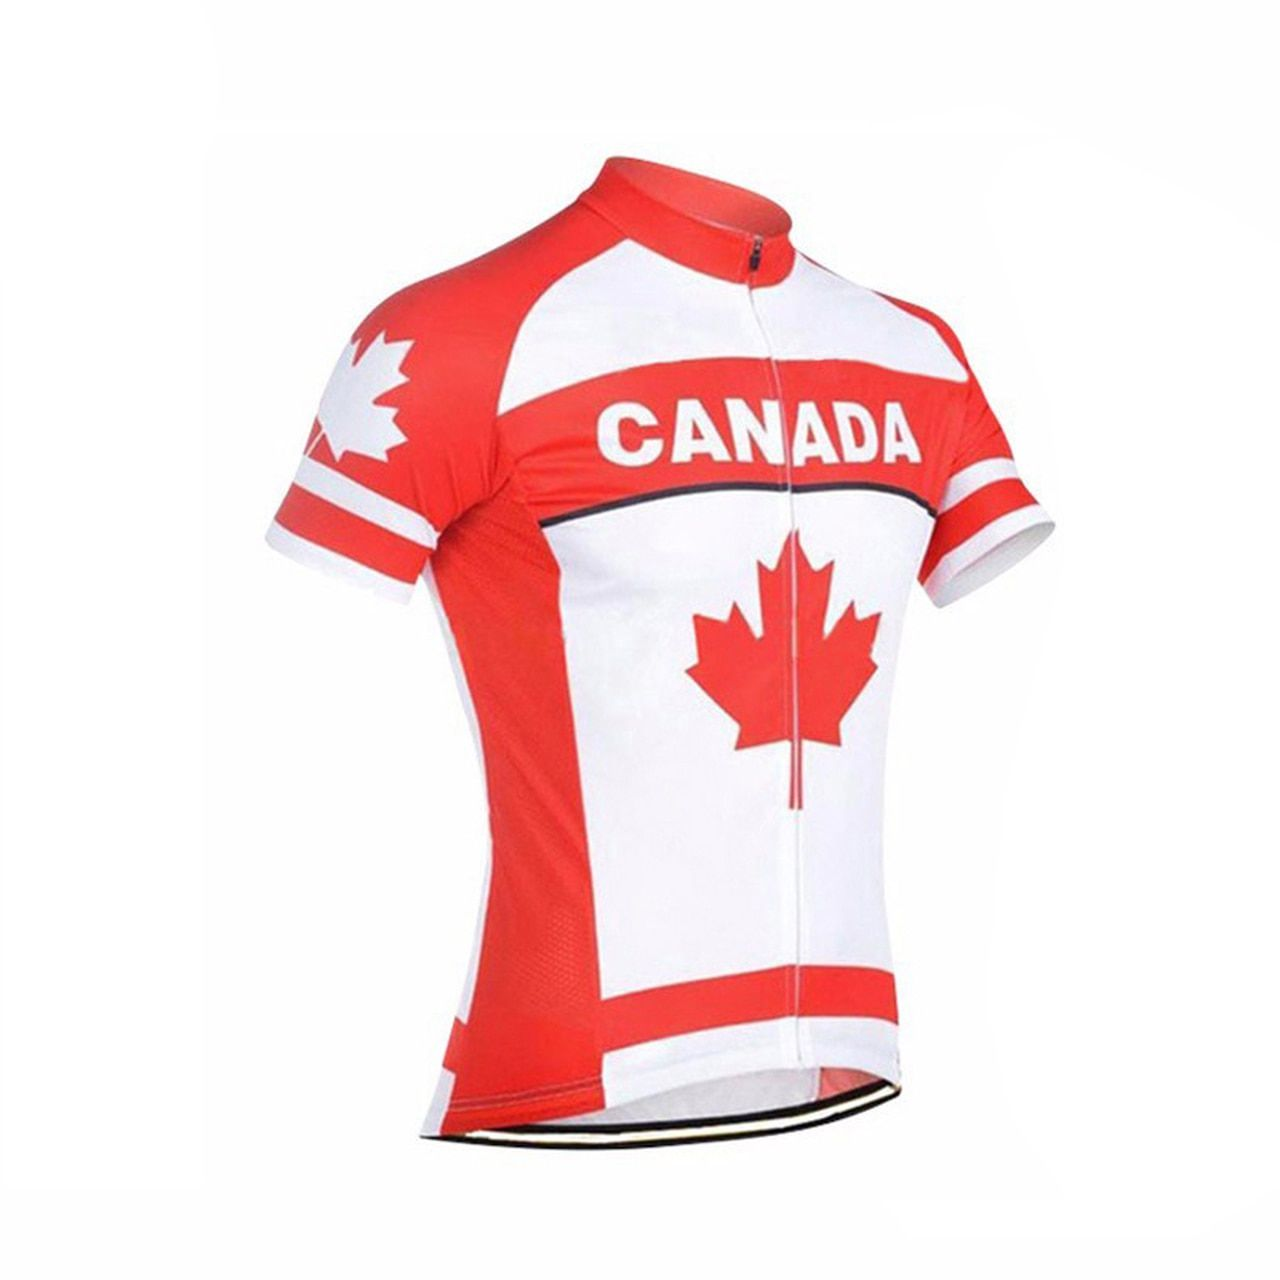 Maple leaf Canada Flag Men's Cycling Jersey White Red in